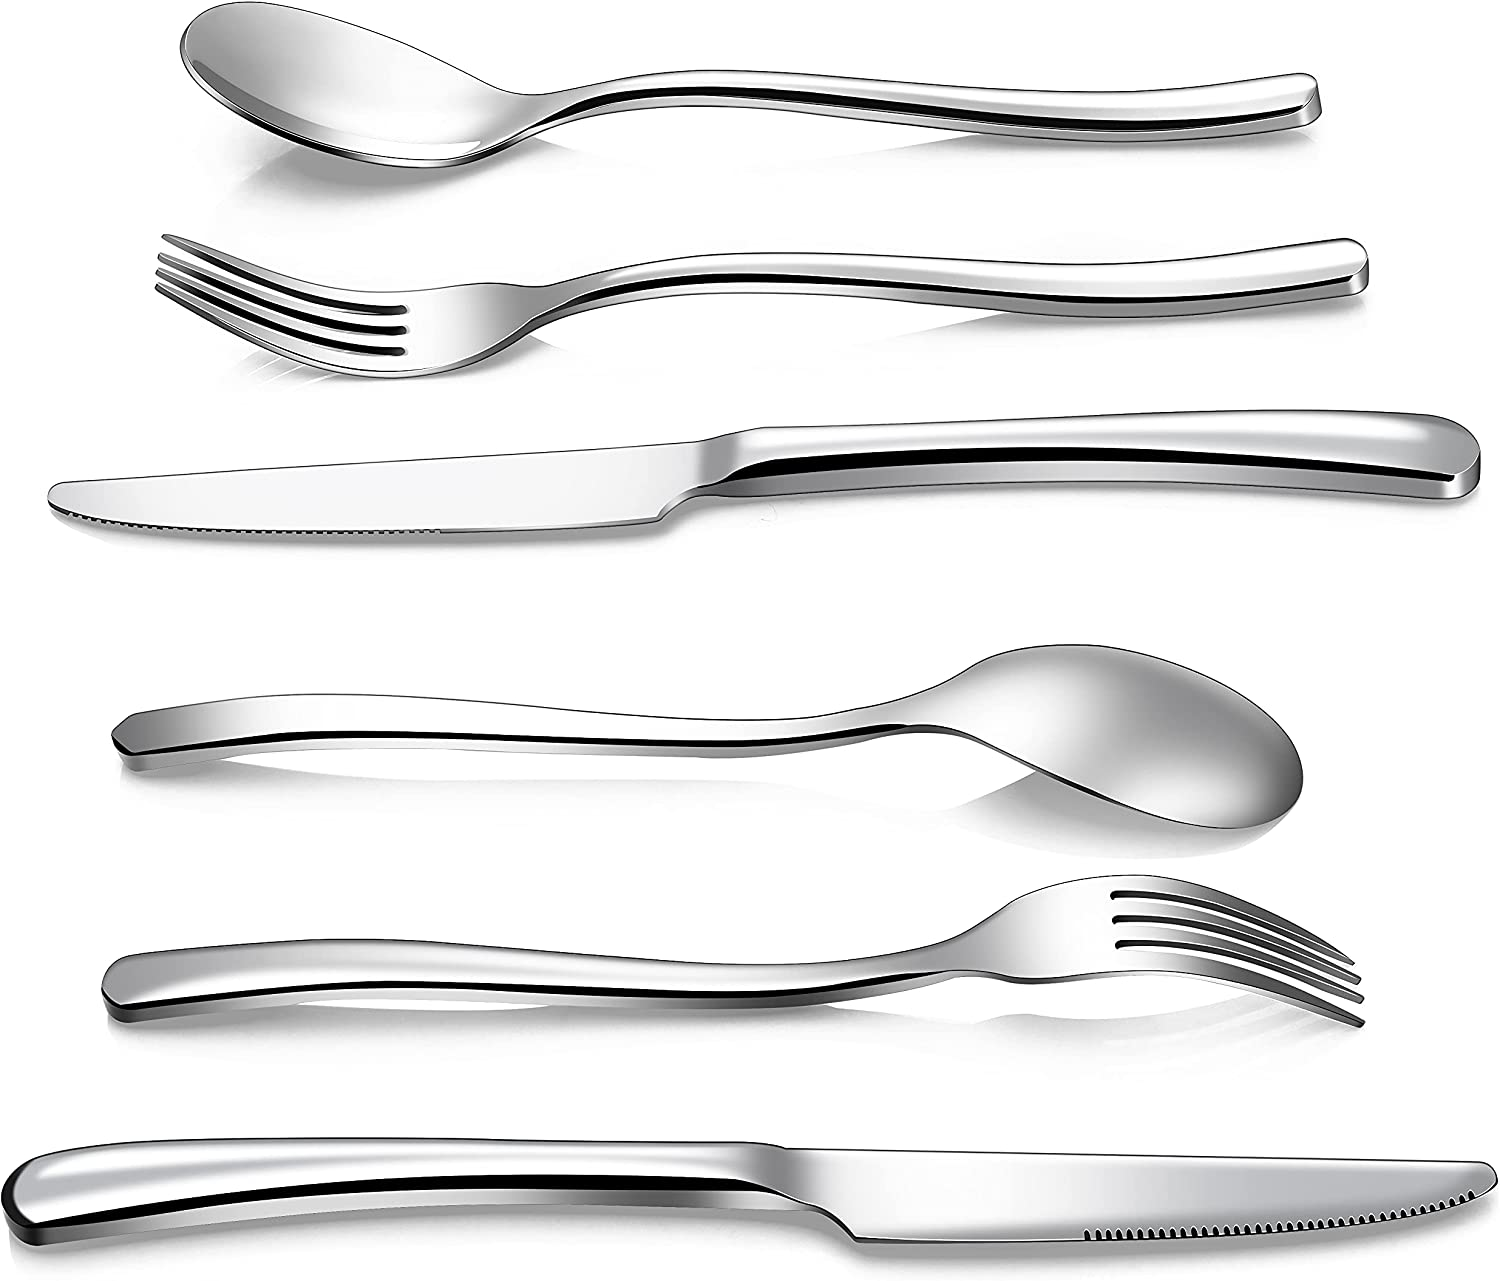 Alaxdtvio Stainless Steel Flatware Set of Max 44% OFF Max 40% OFF 32 Pieces Silv Modern